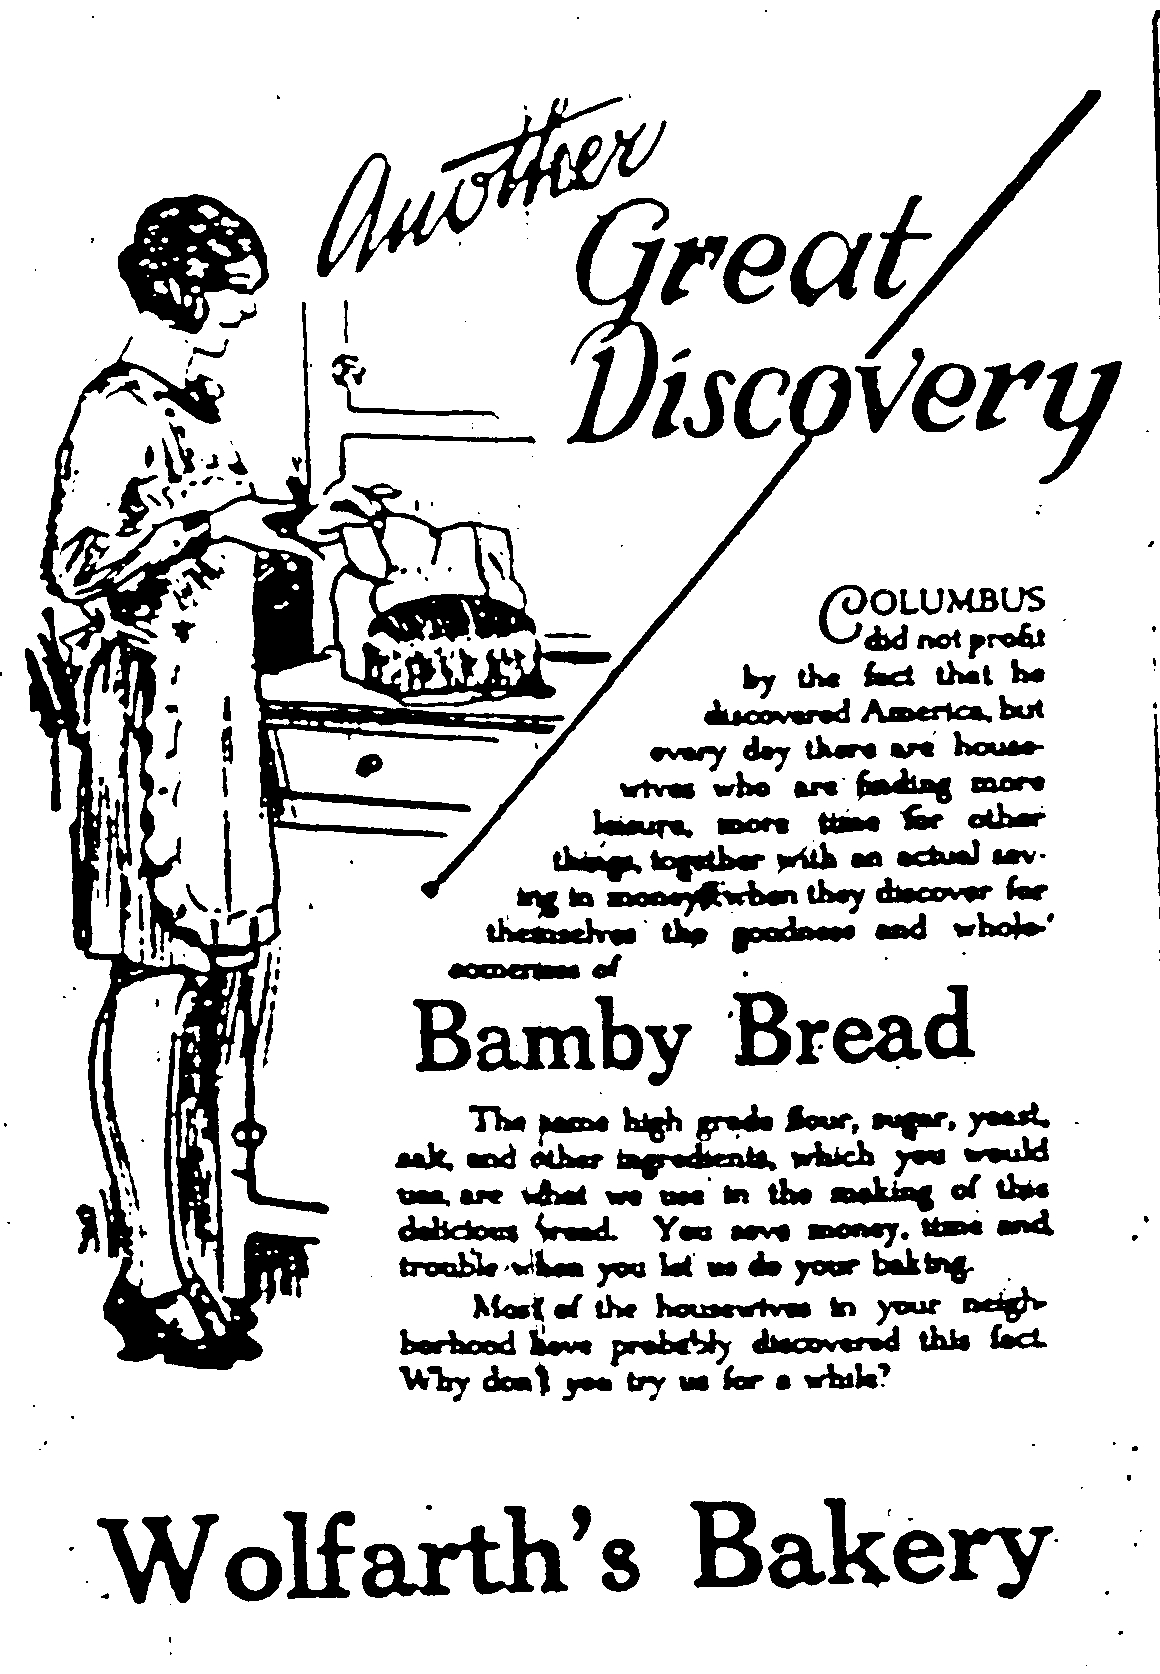 Wolfarth Bakery ad